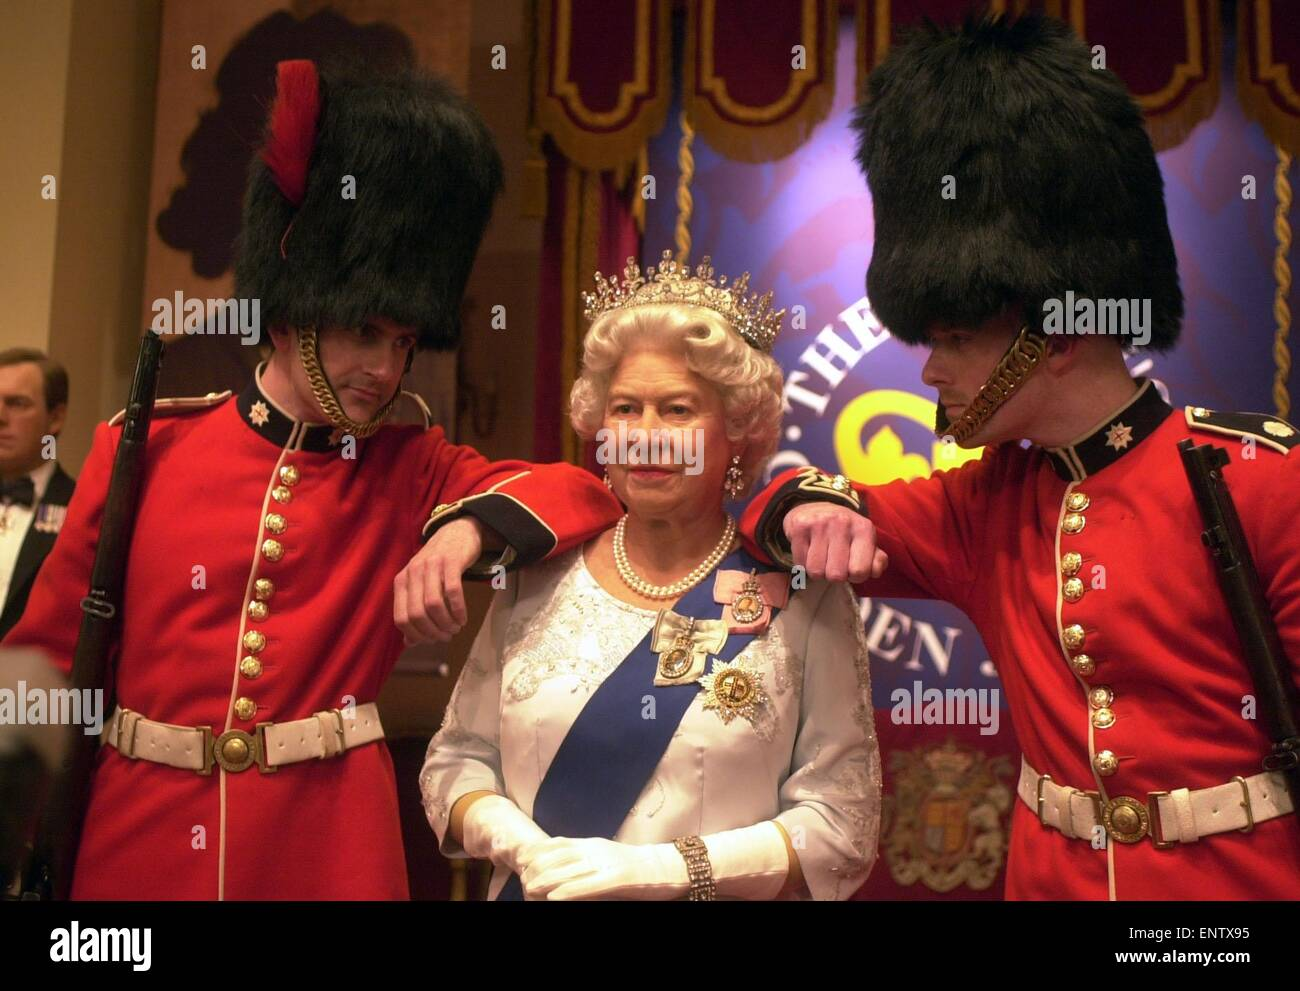 Visitors at Madame Tussauds Wax Works can have their pictures taken with the Queen Elizabeth II model, the ropes - Stock Image